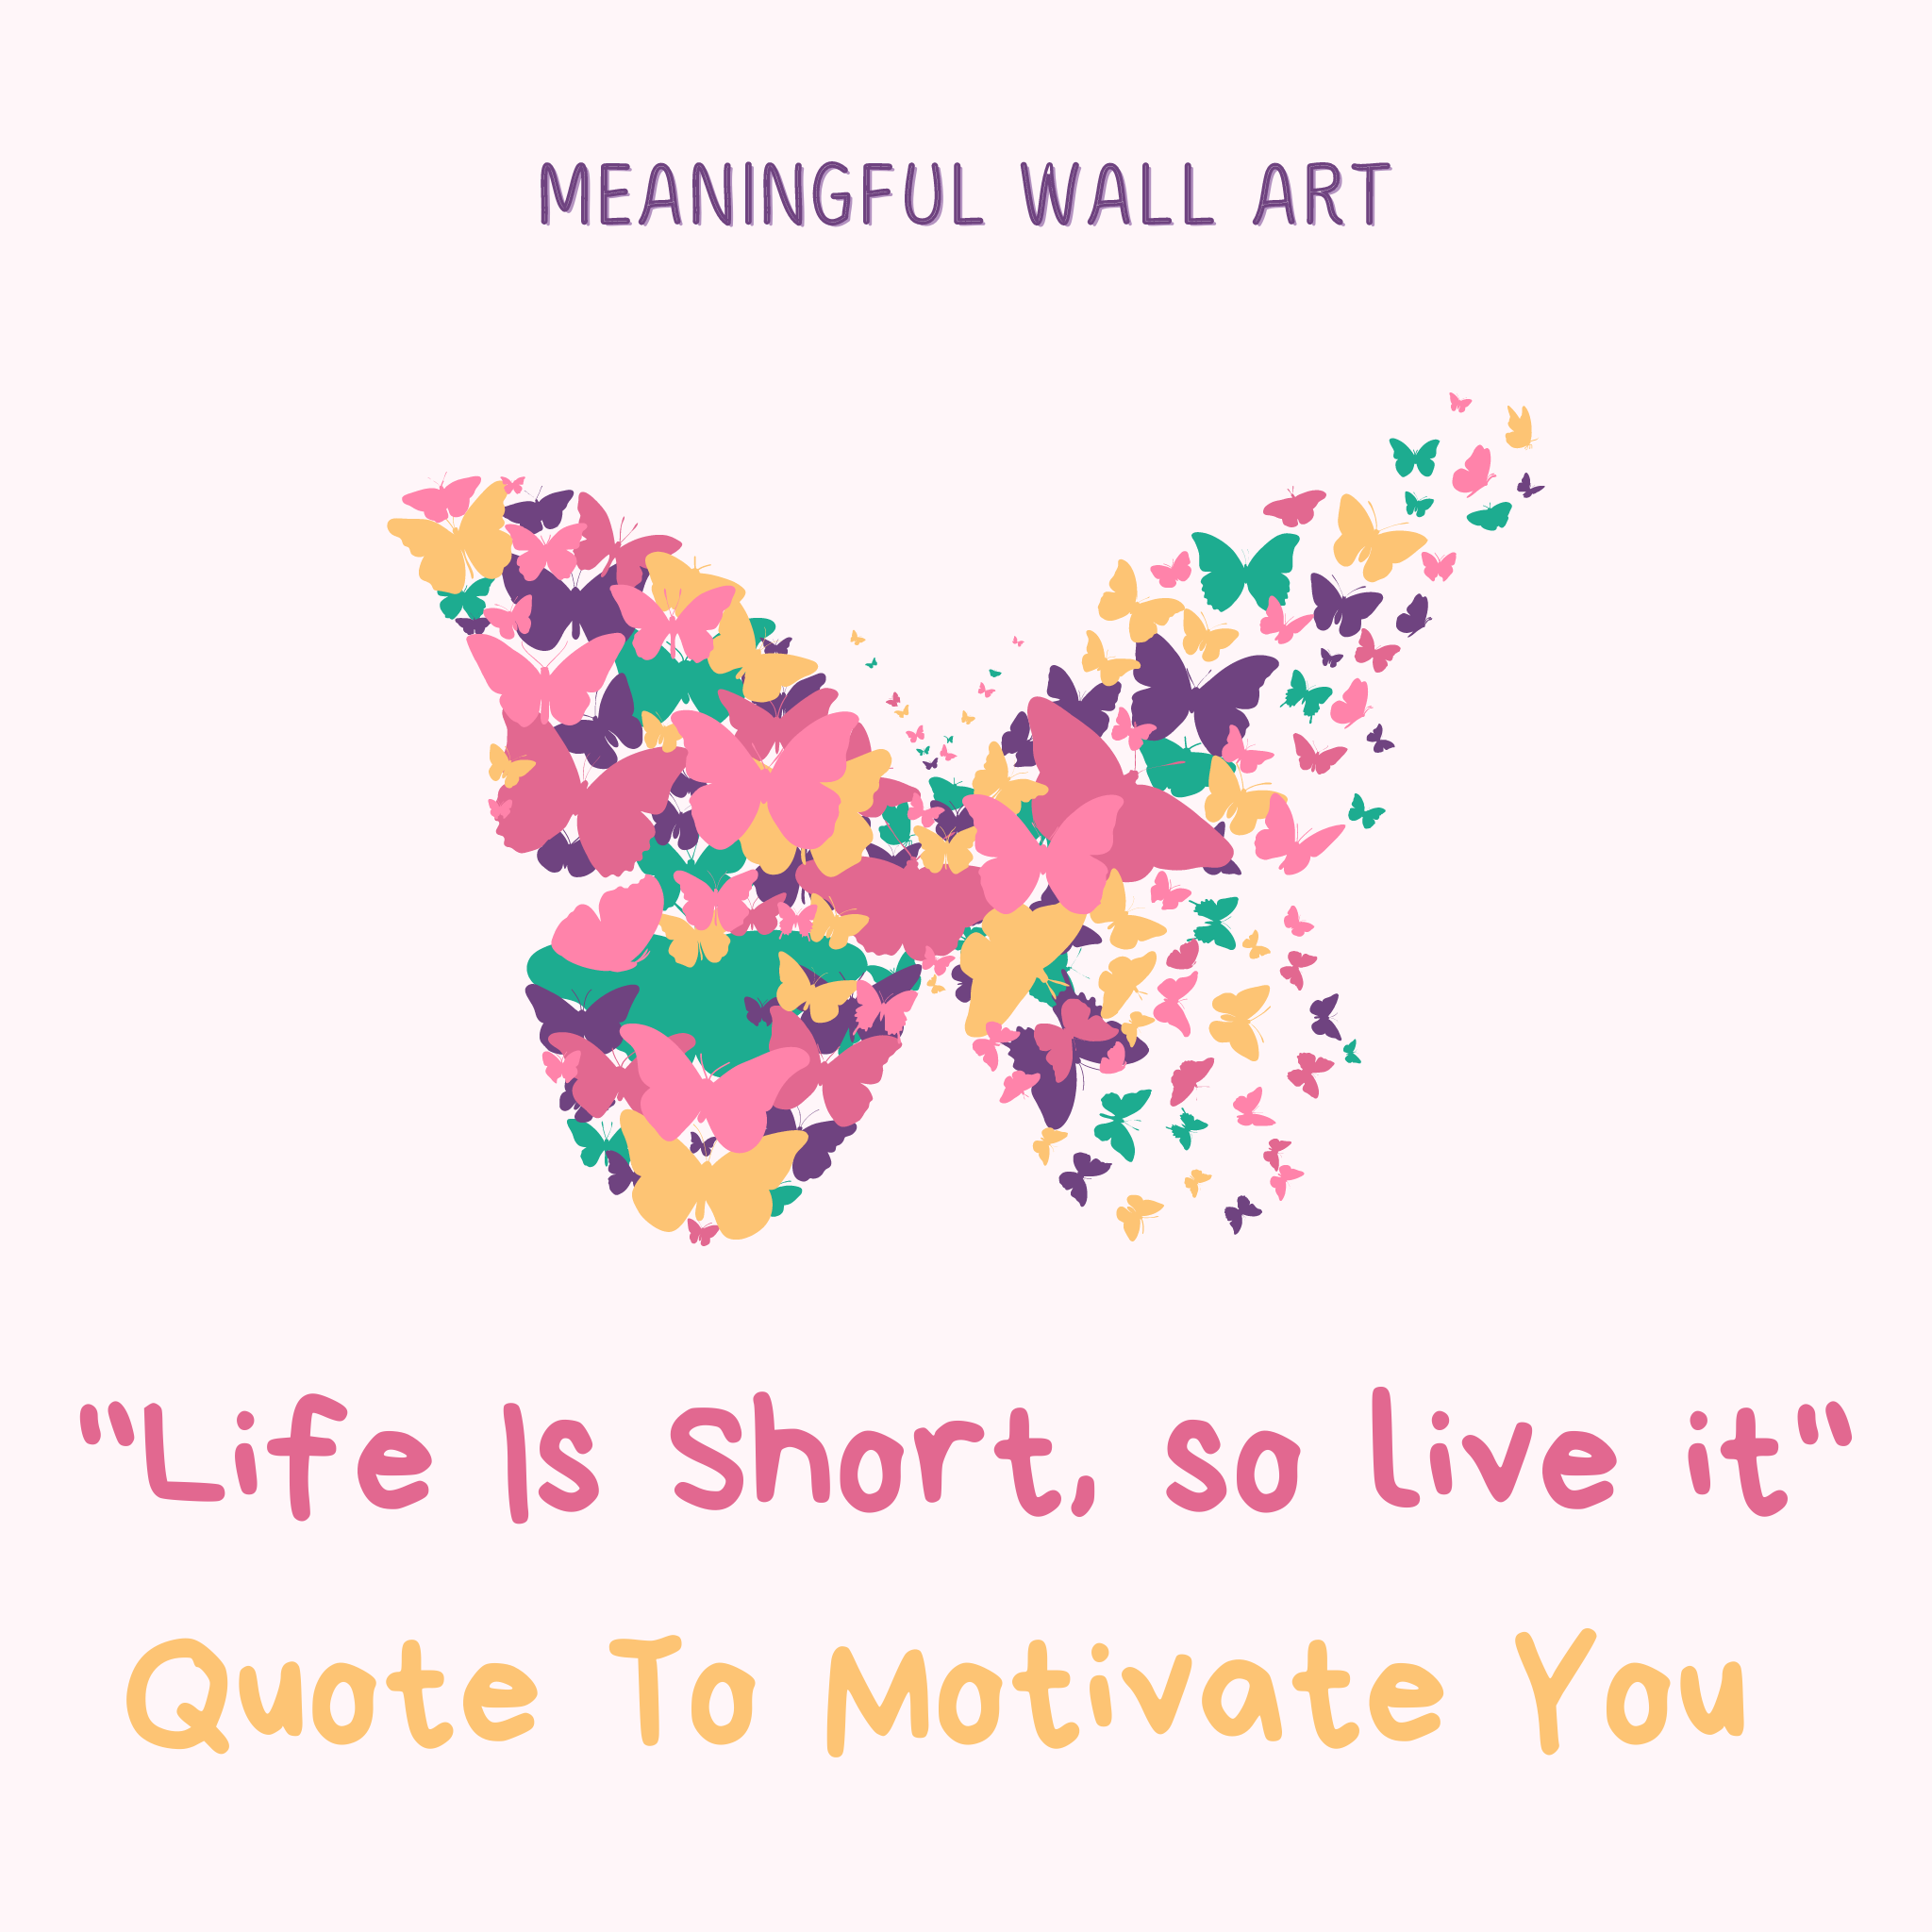 Life Is Short So Live It - Quote To Motivate You   Meaningful wall art